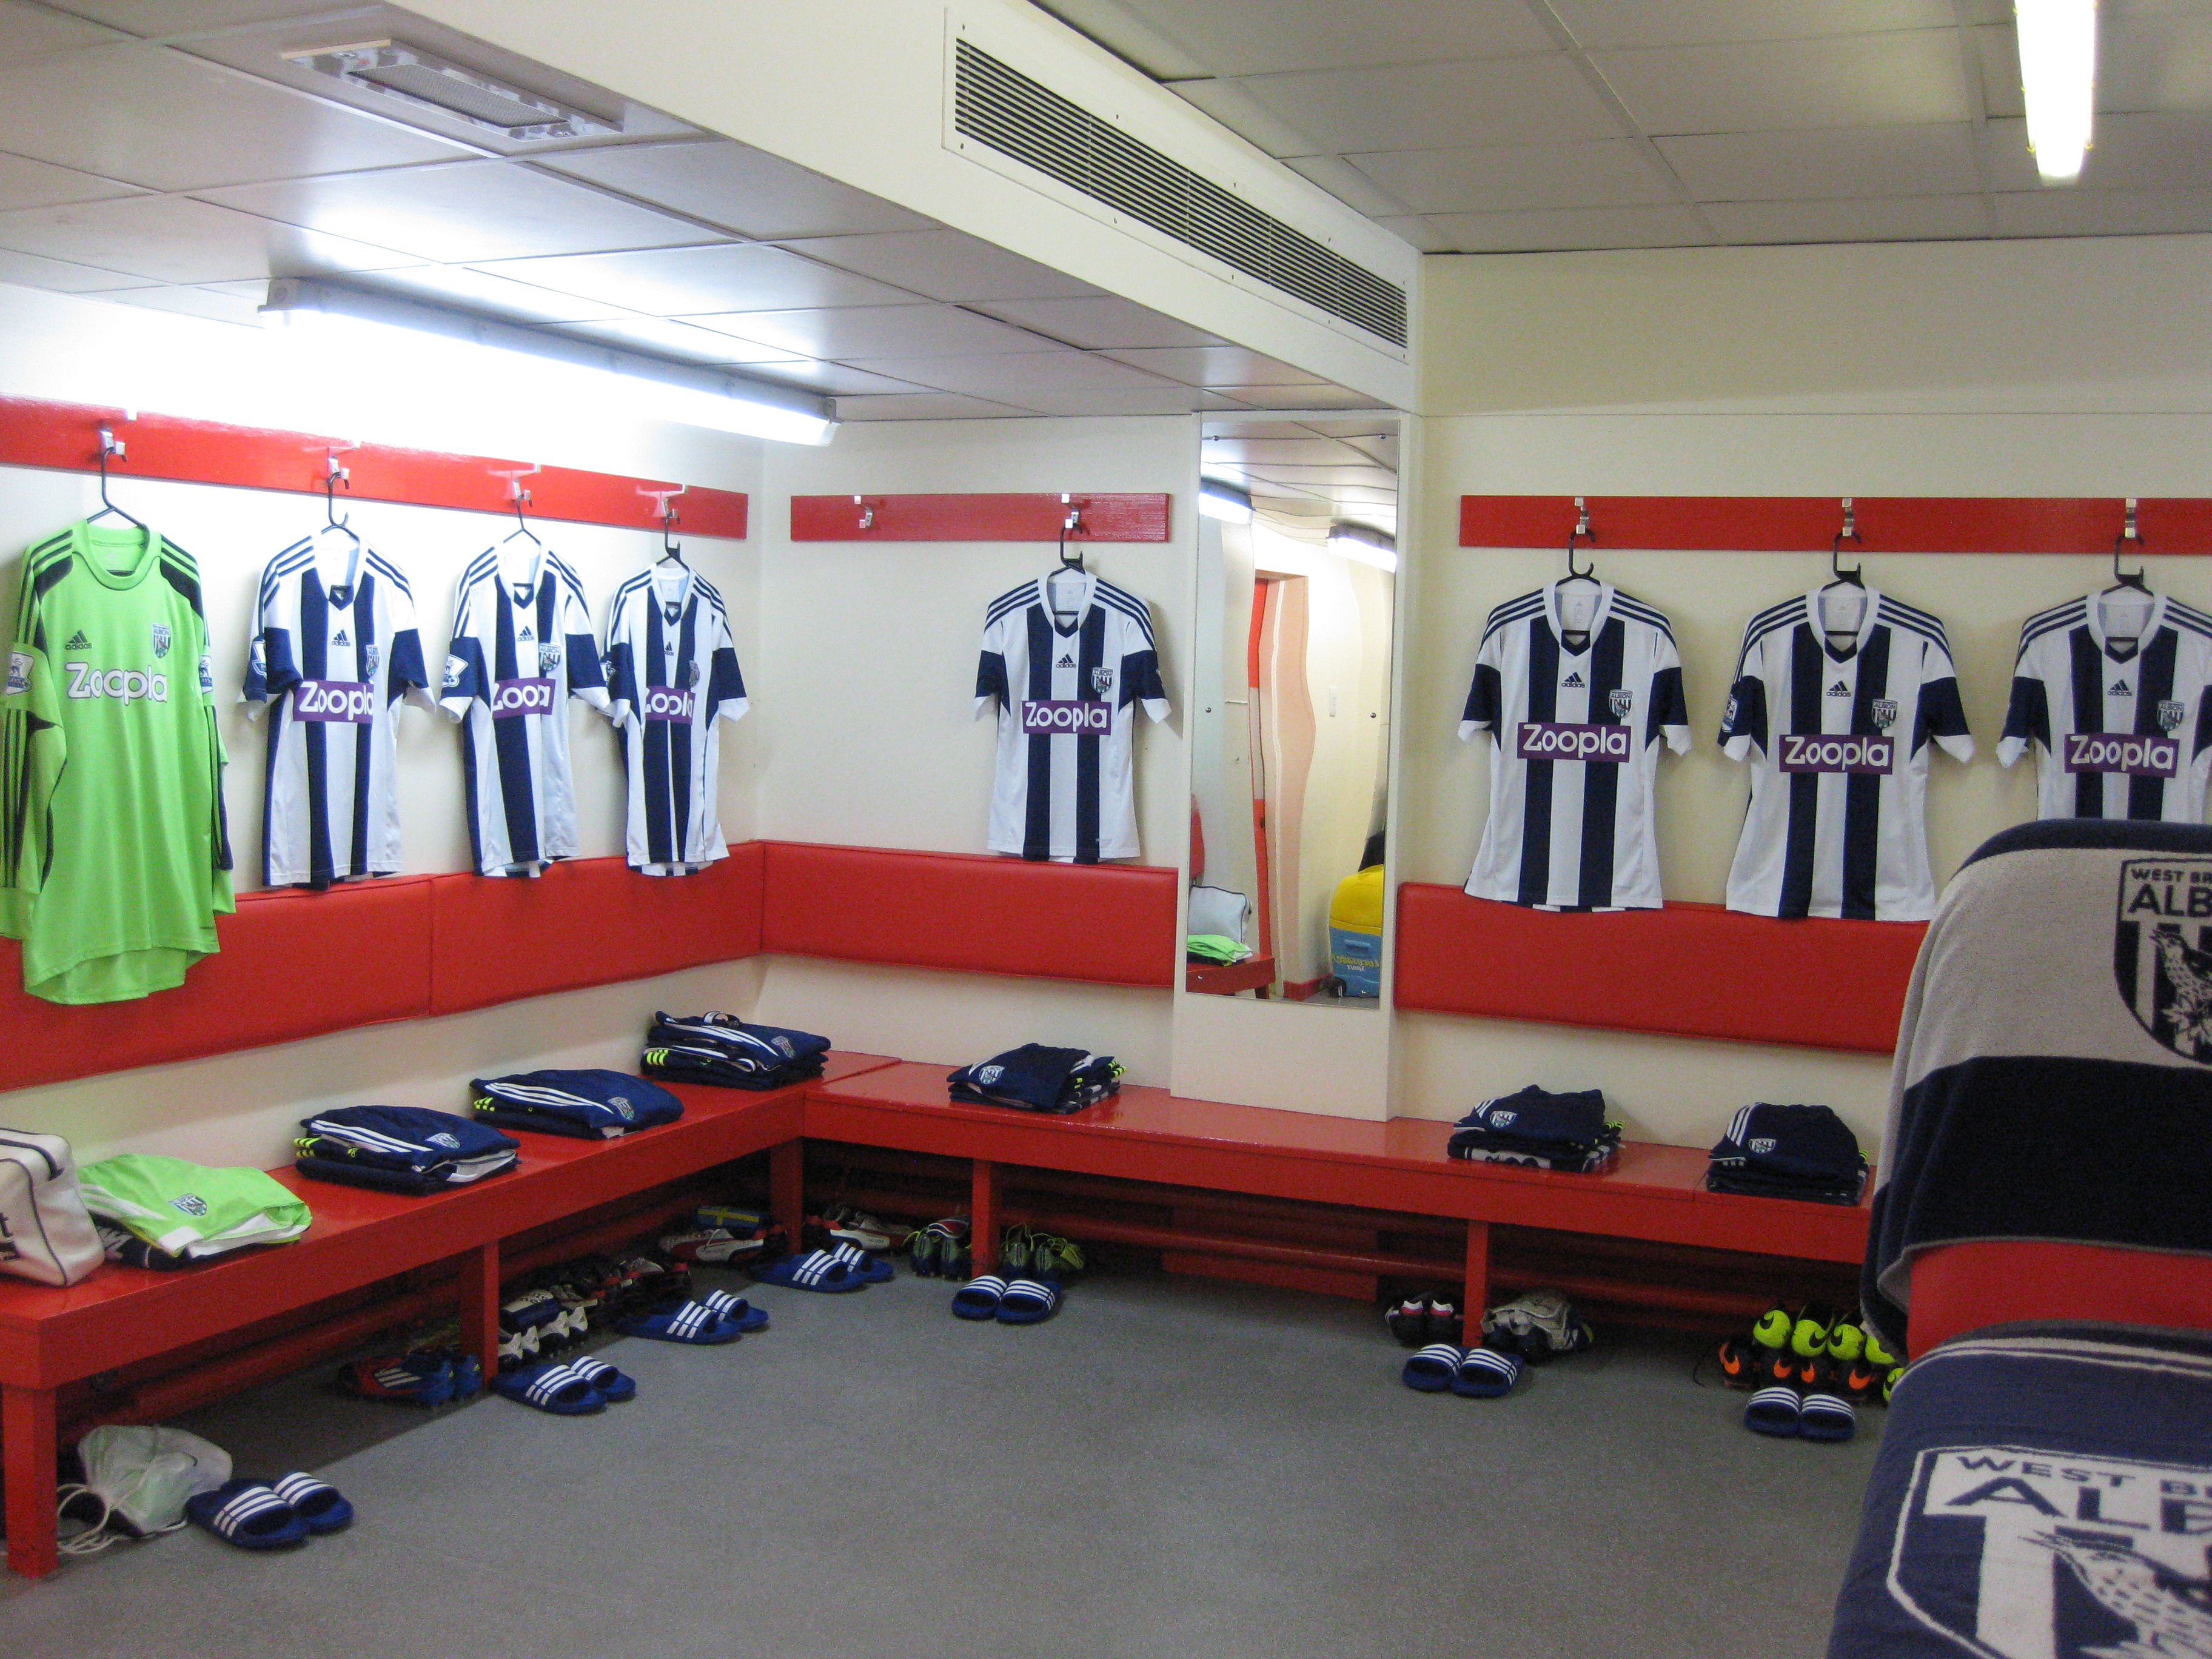 West Brom Locker Room